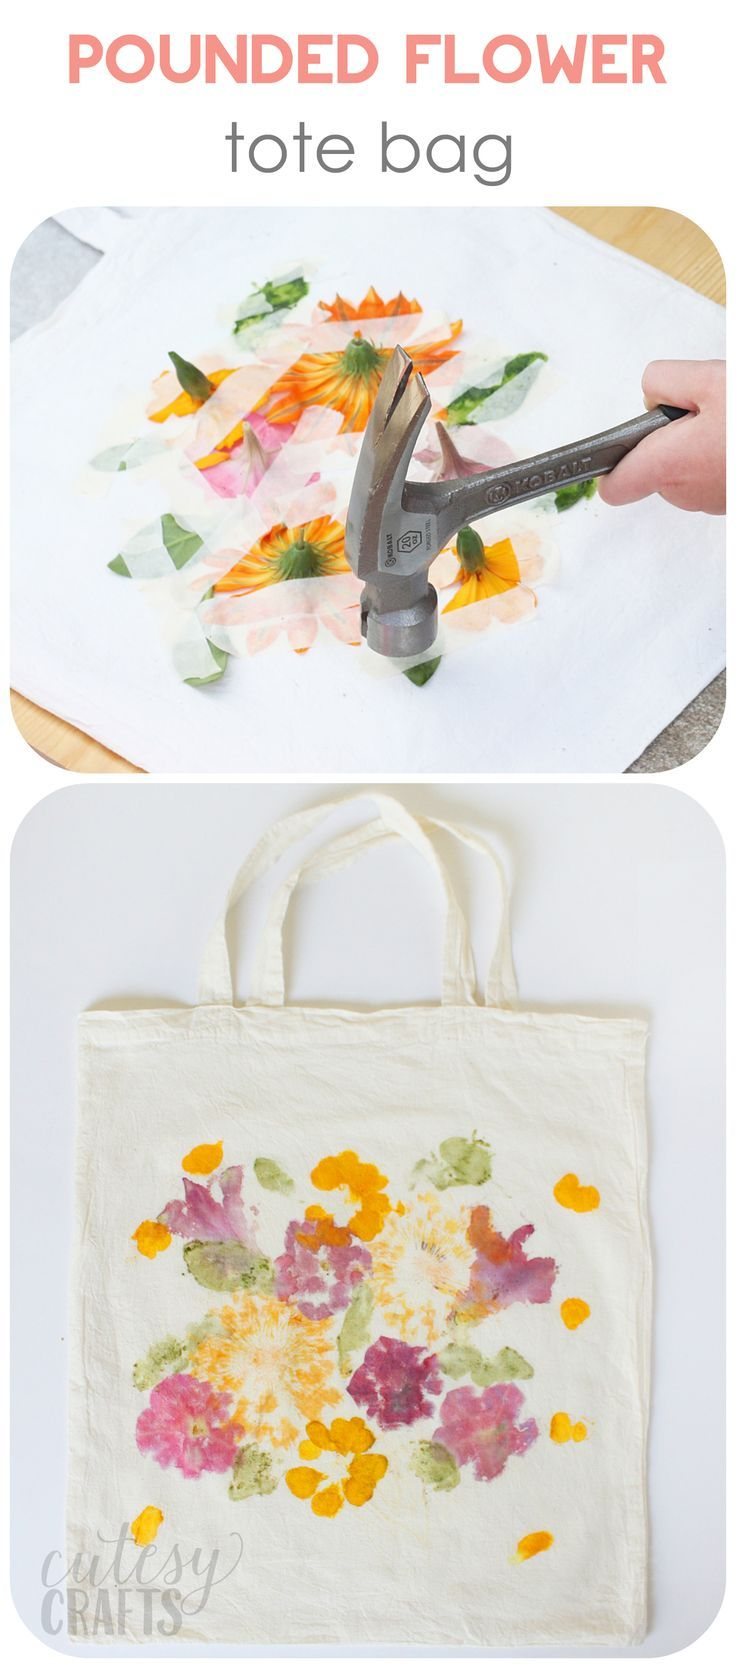 Mother's Day Gift: Pounded Flower Tote Bag - DIY Candy #flowerfabric